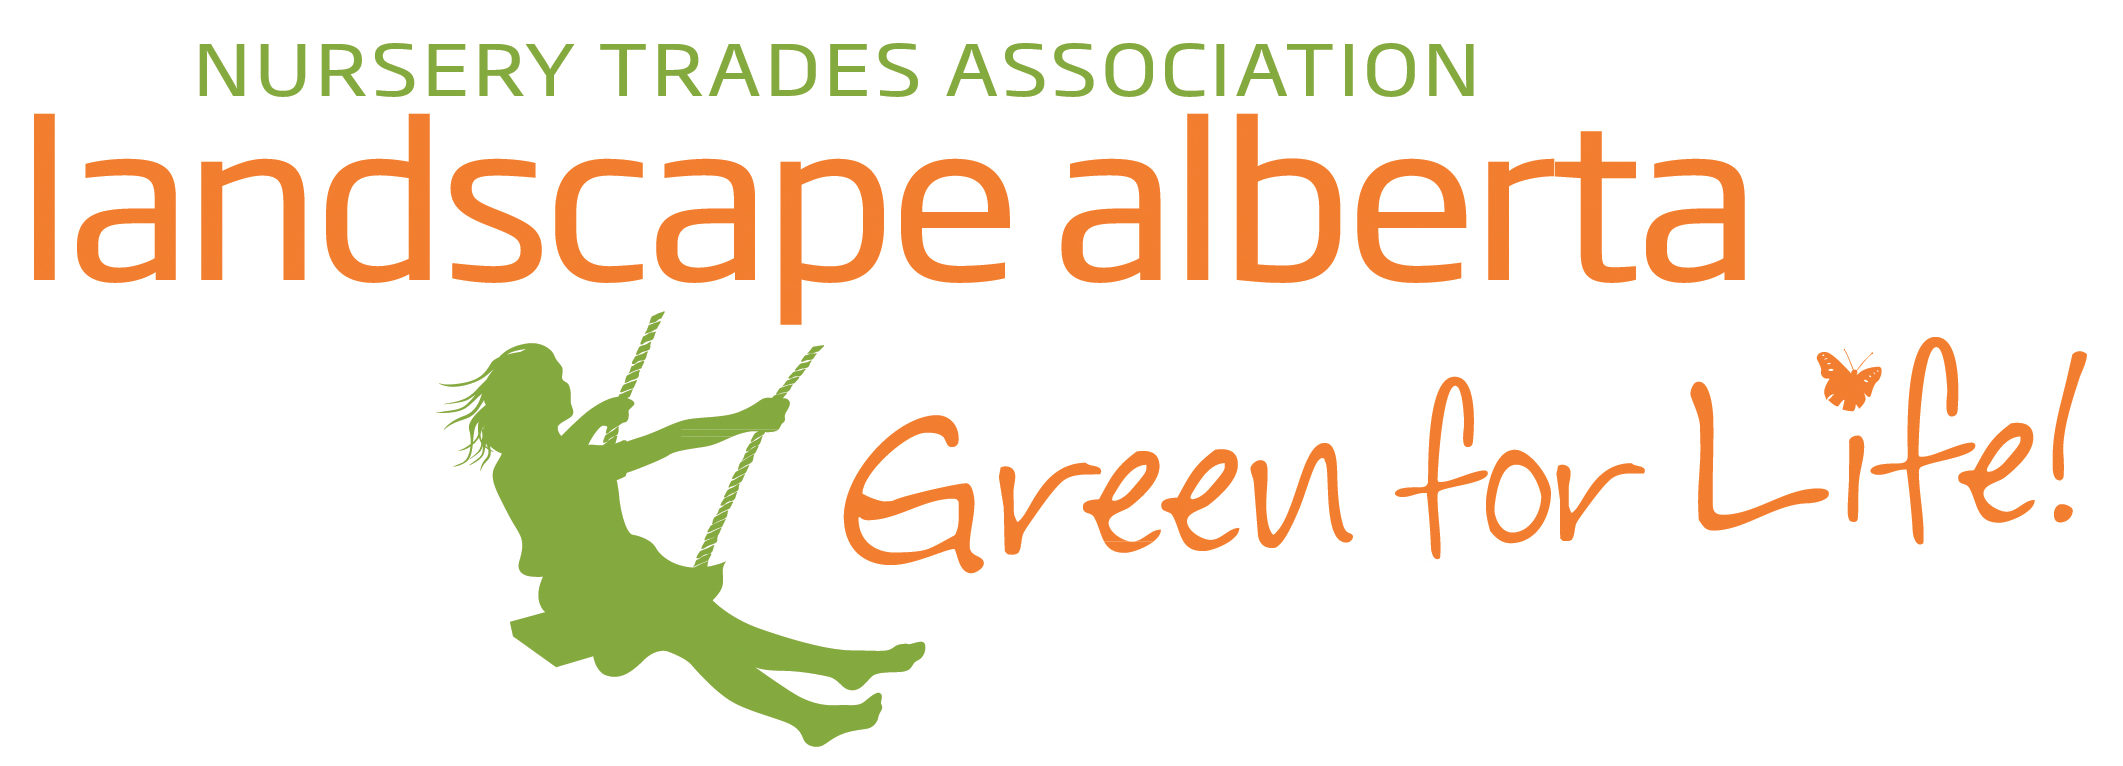 Lanta Nursery Trades Association Landscape Alberta Green for Life! Proud Member